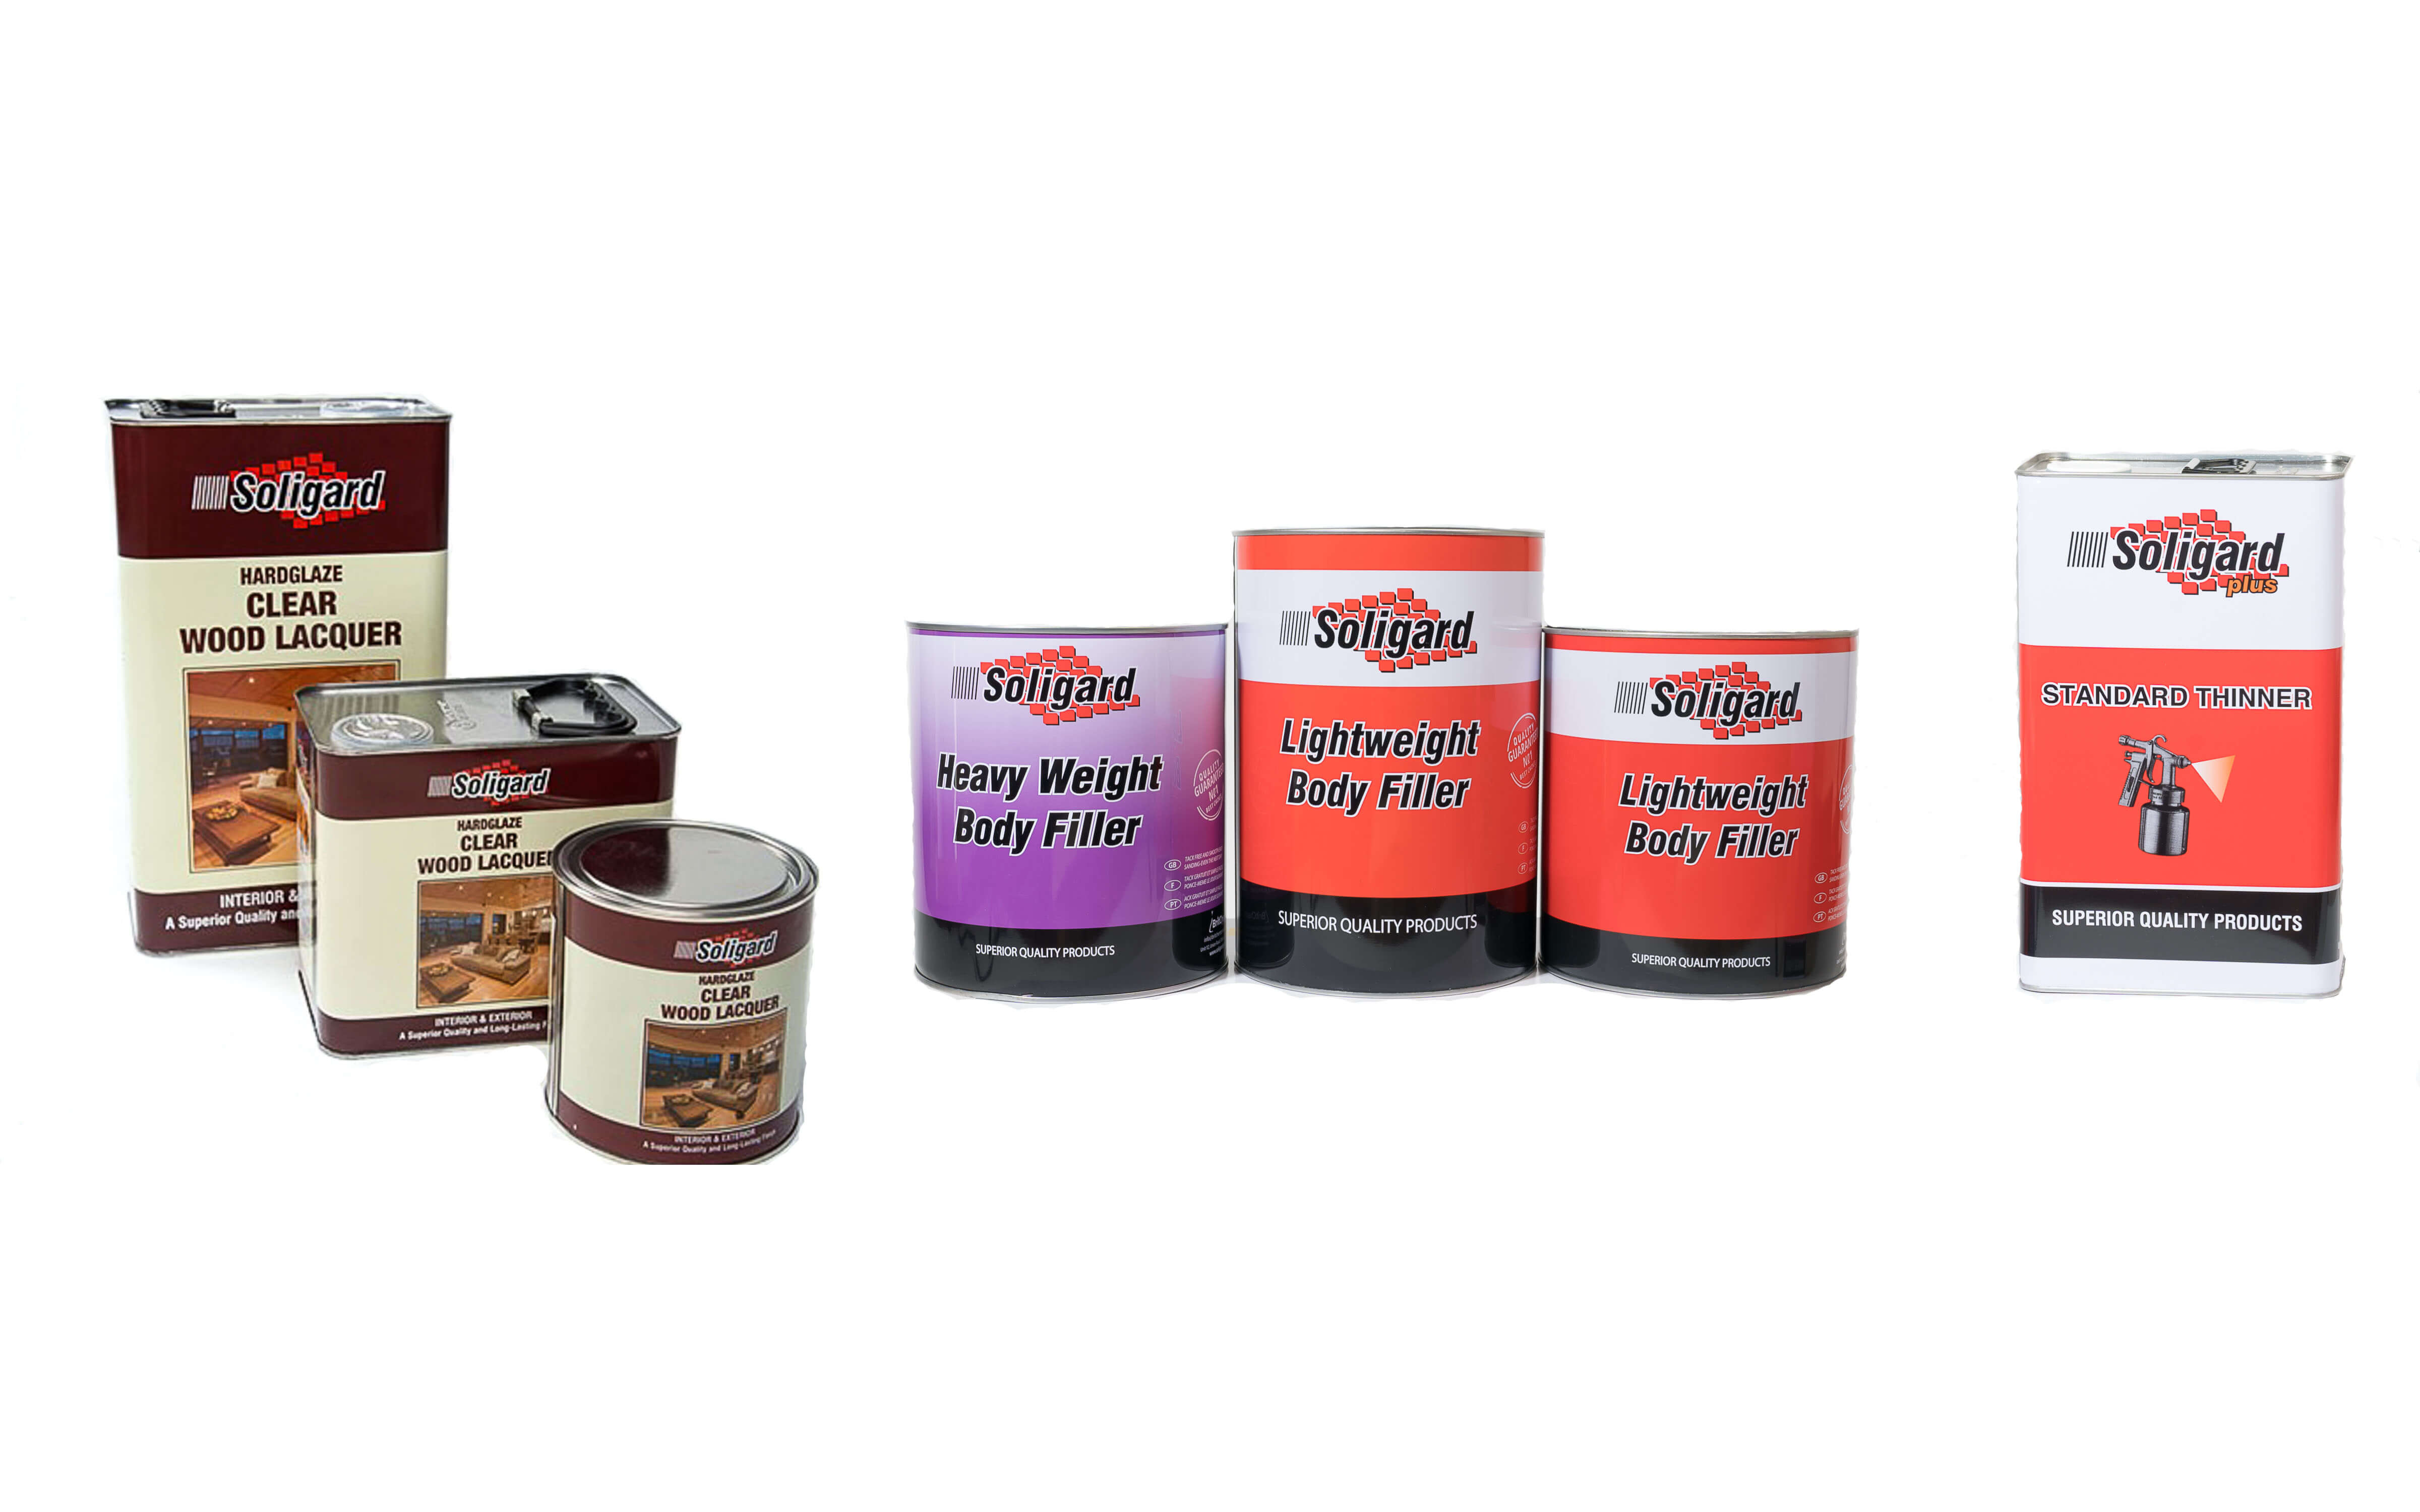 Soligard Clear Wood Lacquer, Body Fillers and Standard Thinner